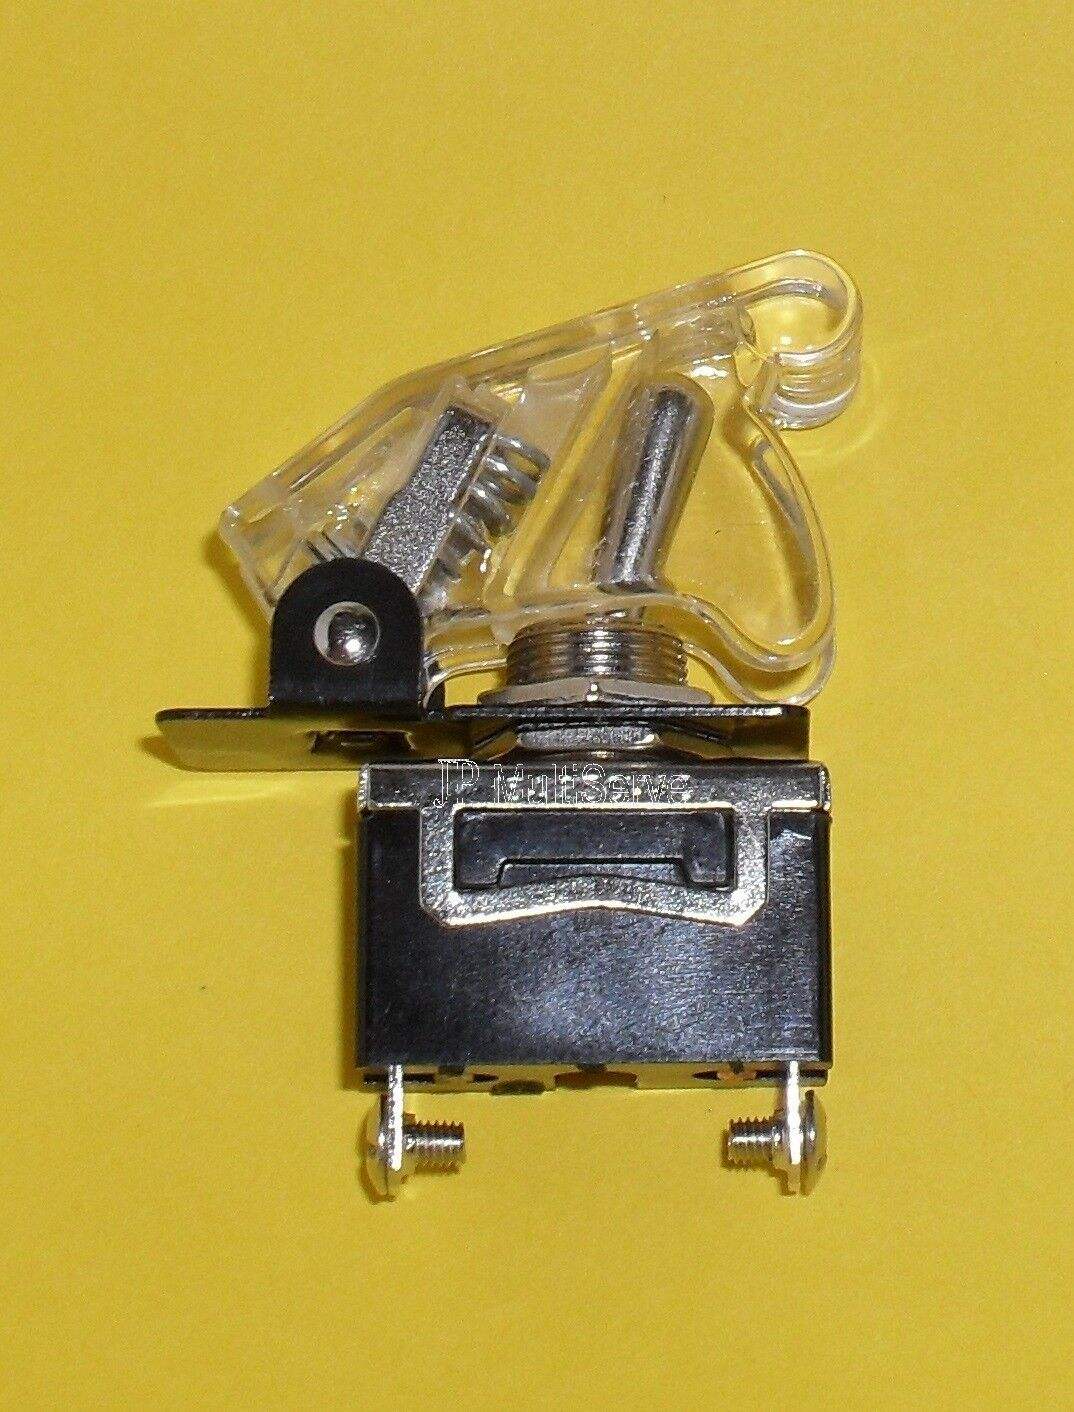 1 SPST On/Off Full Size Toggle Switch with CLEAR Safety Cover